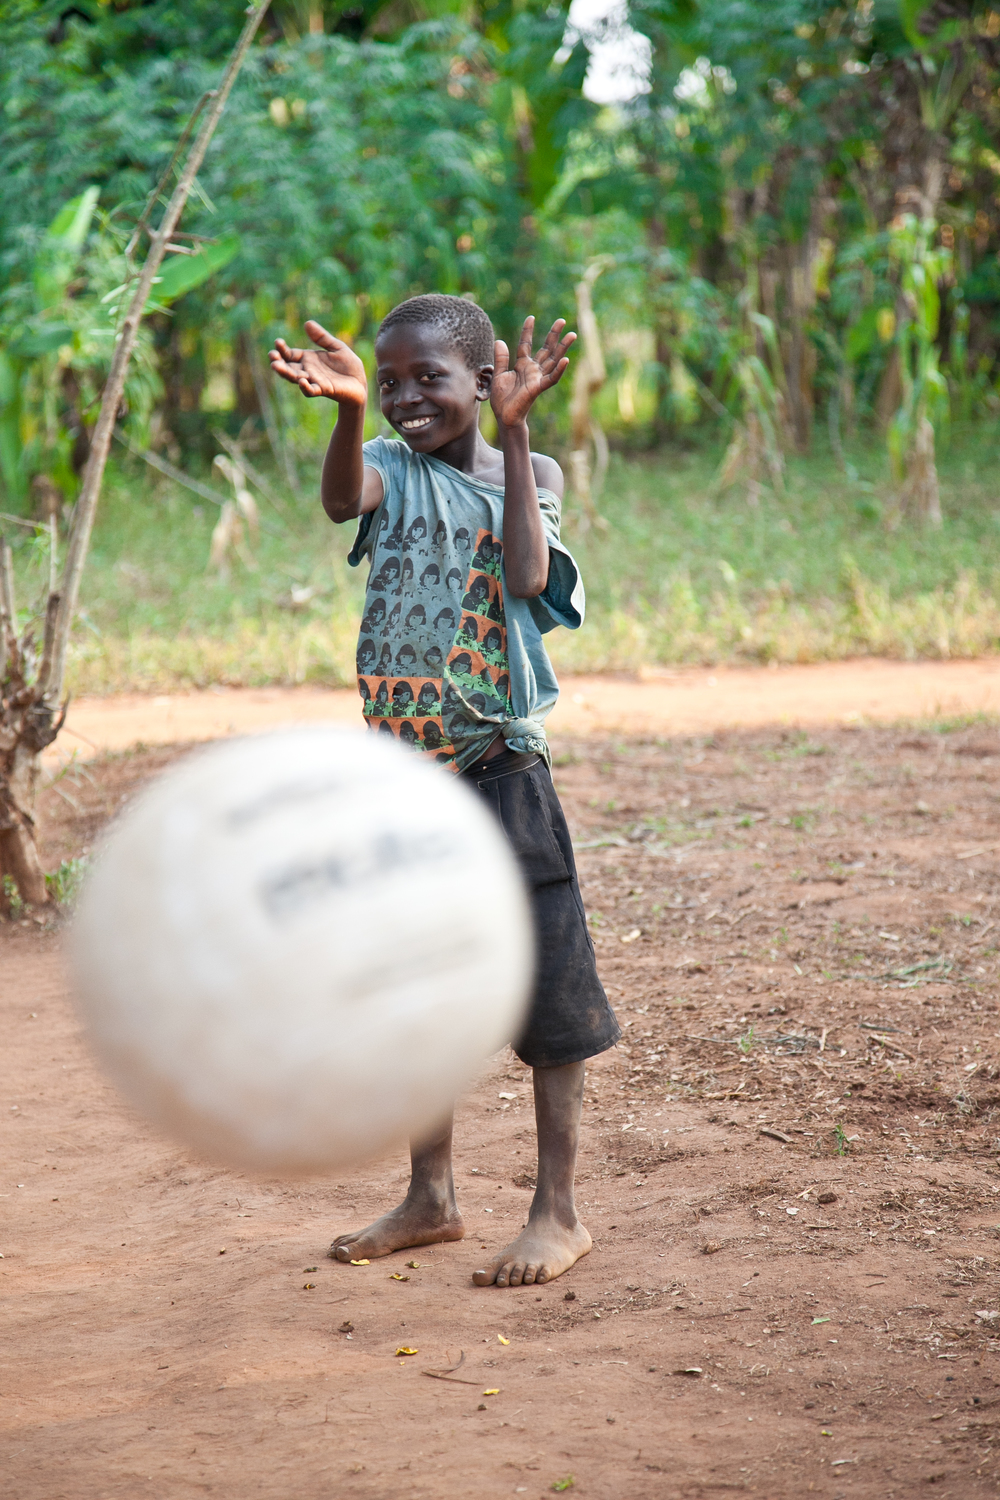 trisa-taro-volleyball-village-uganda.jpg